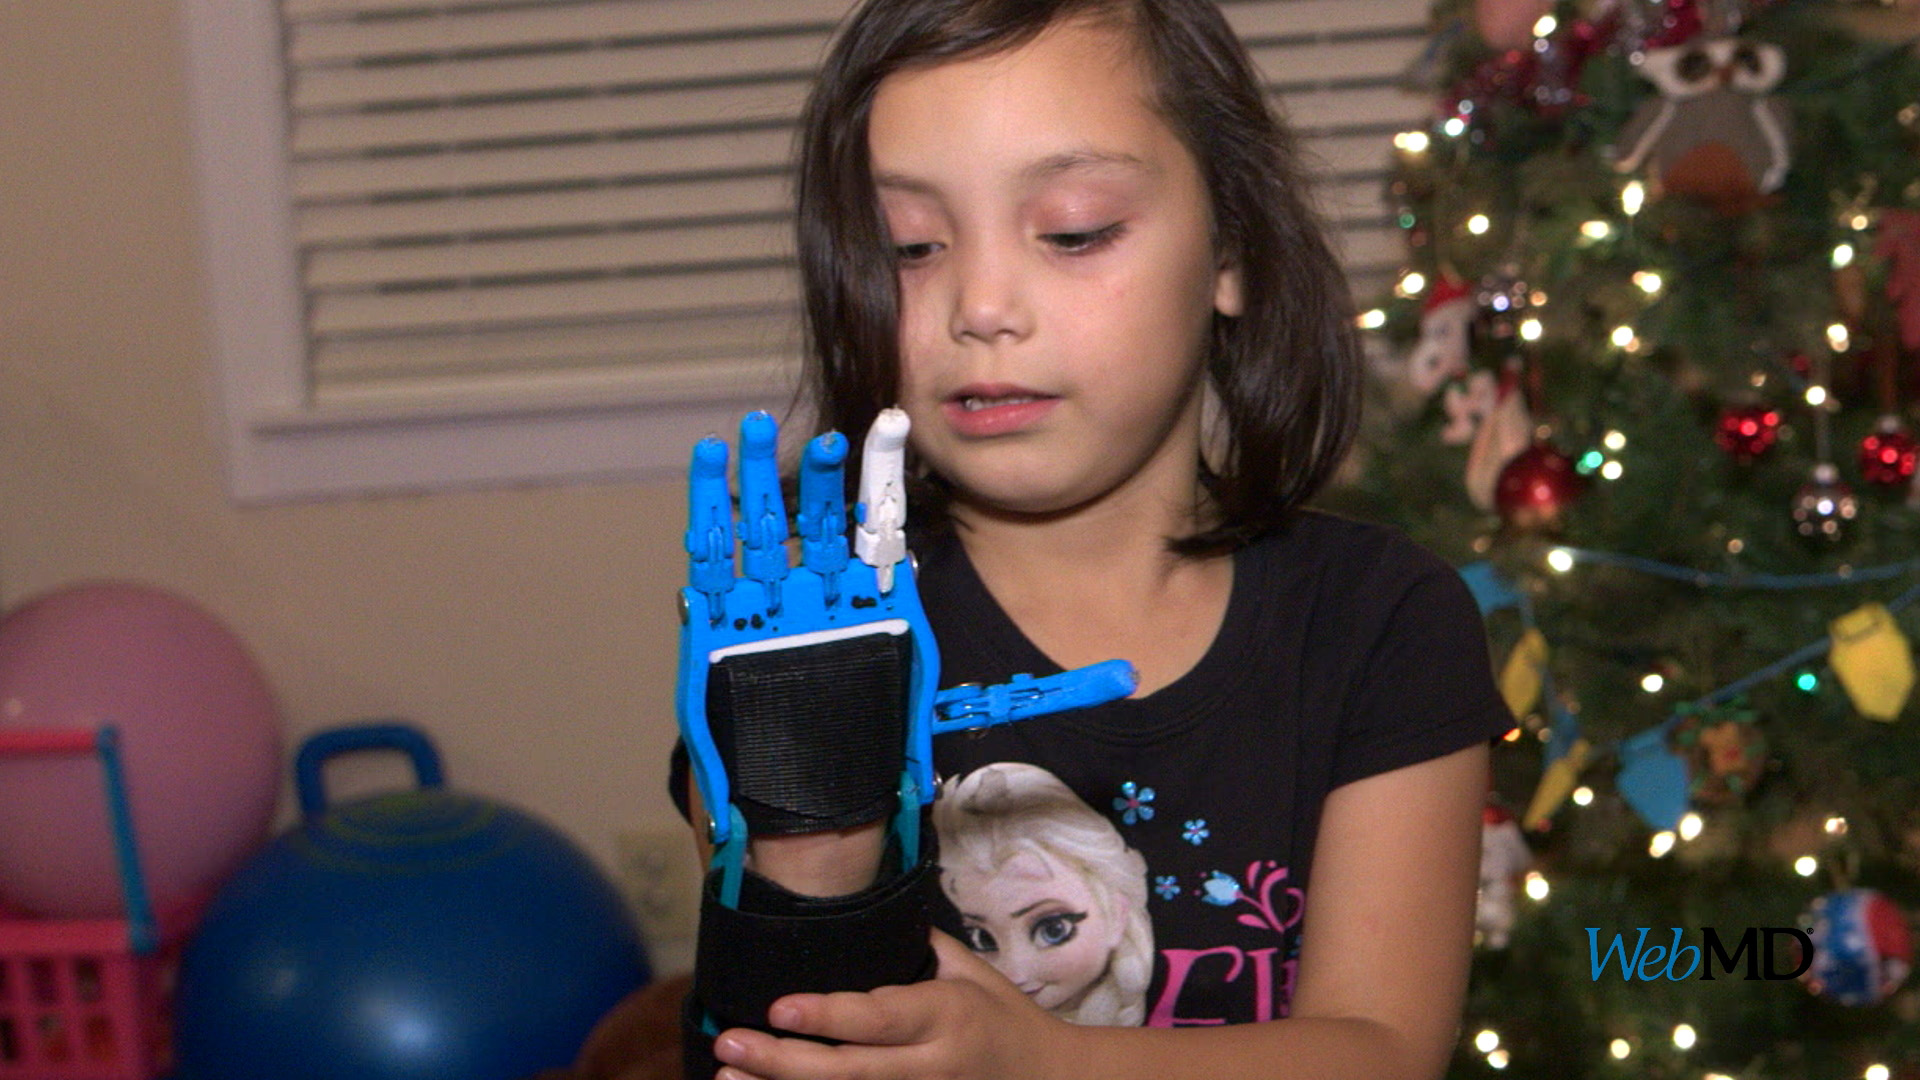 With 3-D Printing, Ariah receives prosthetic hand